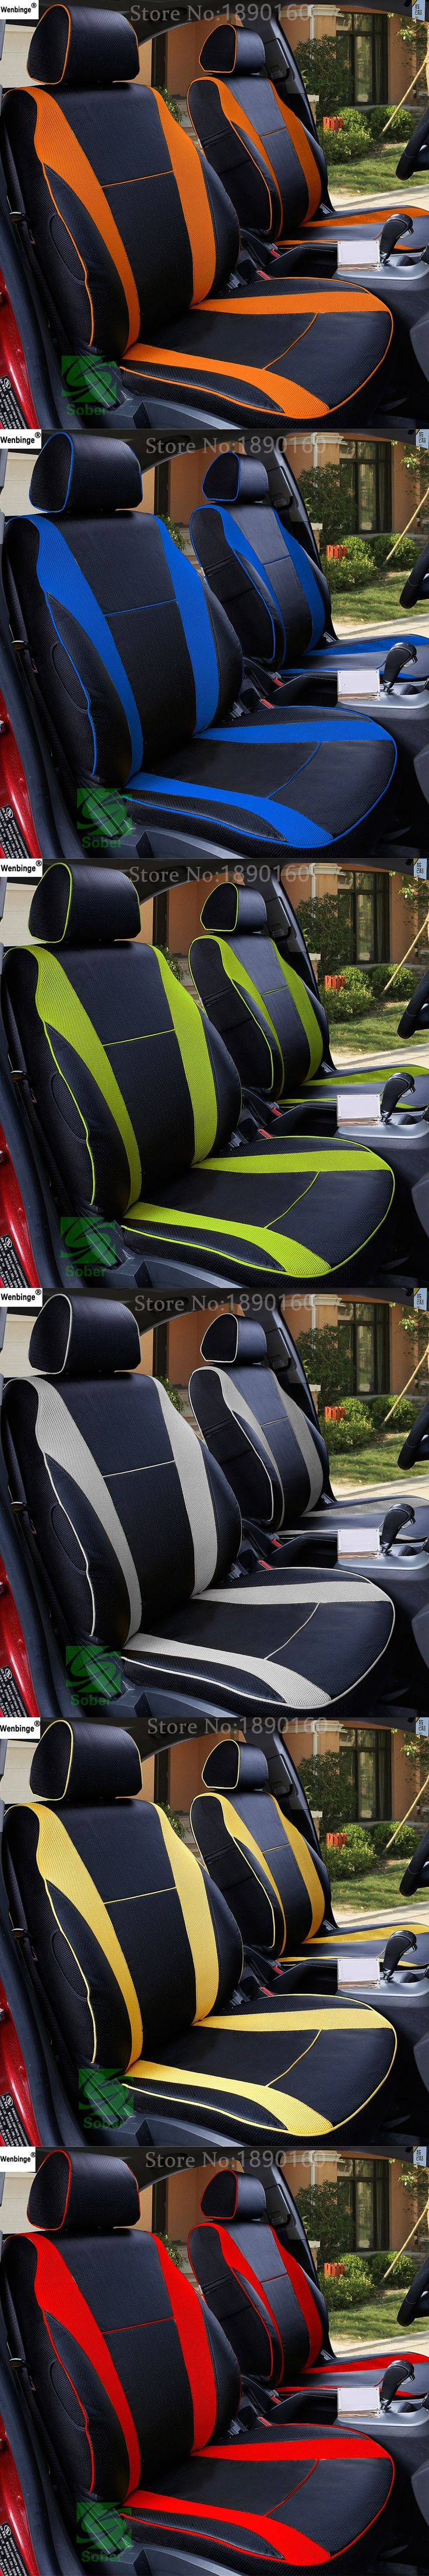 Front Rear Special Leather Car Seat Covers For Chery Ai Ruize A3 Tiggo